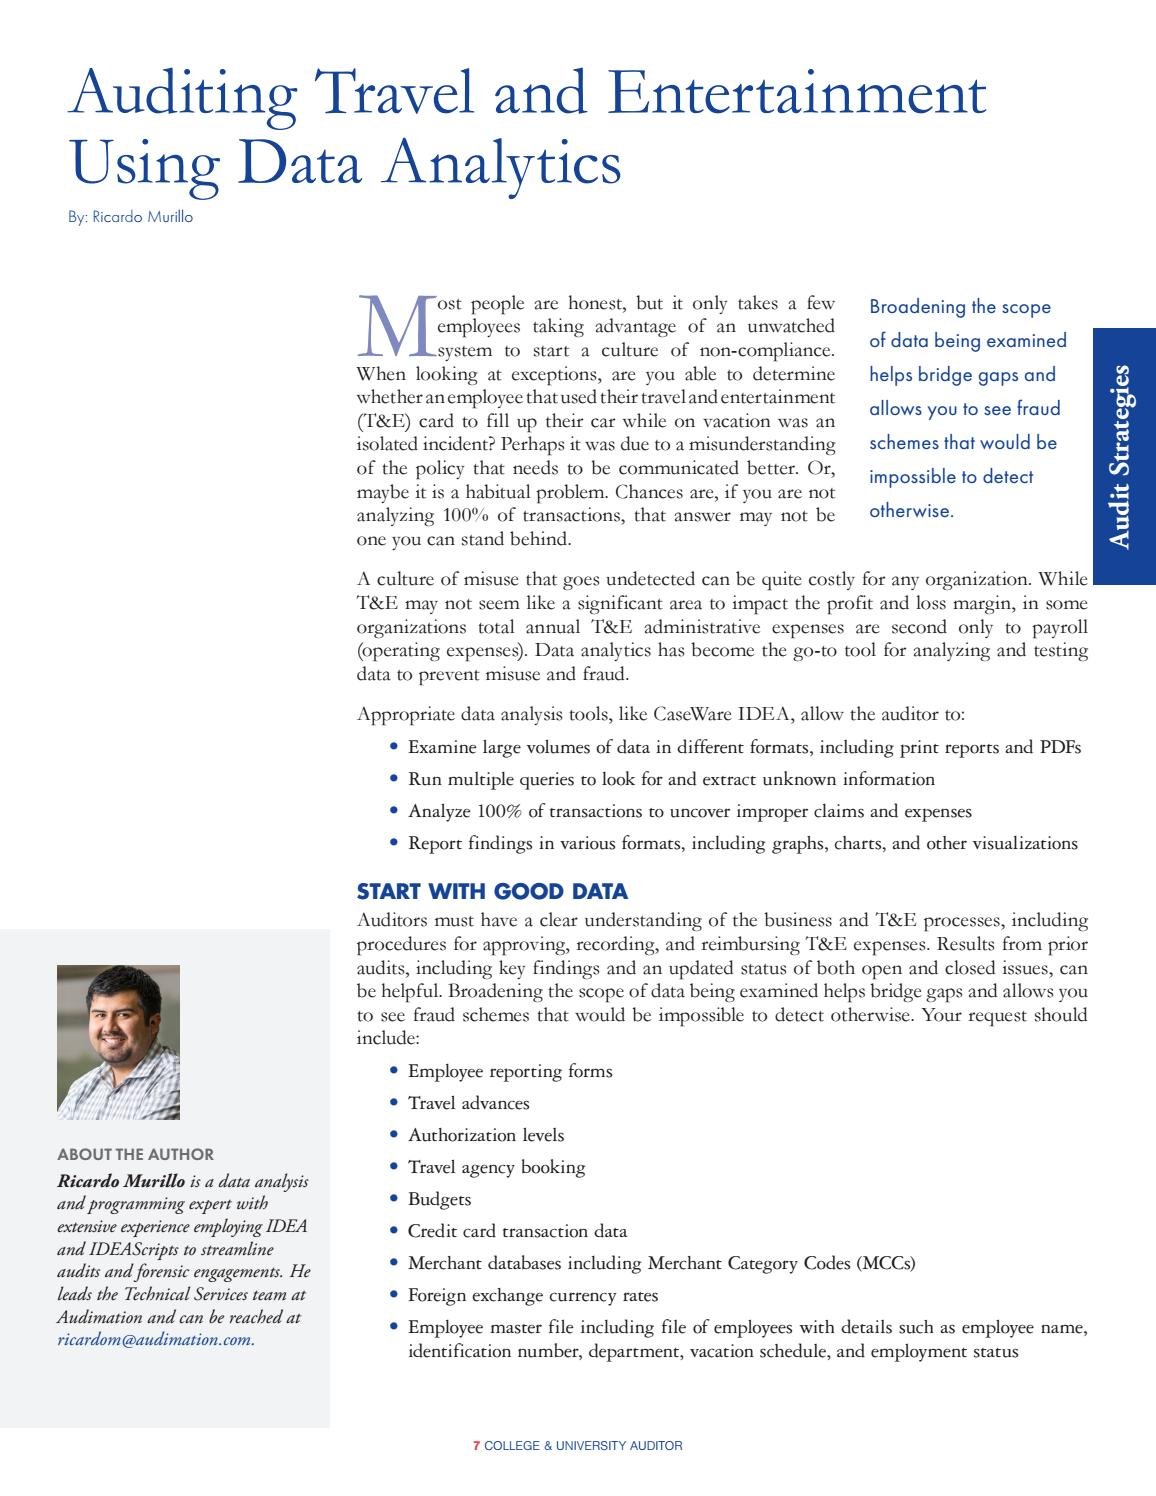 Auditing Travel And Entertainment Using Data Analytics By